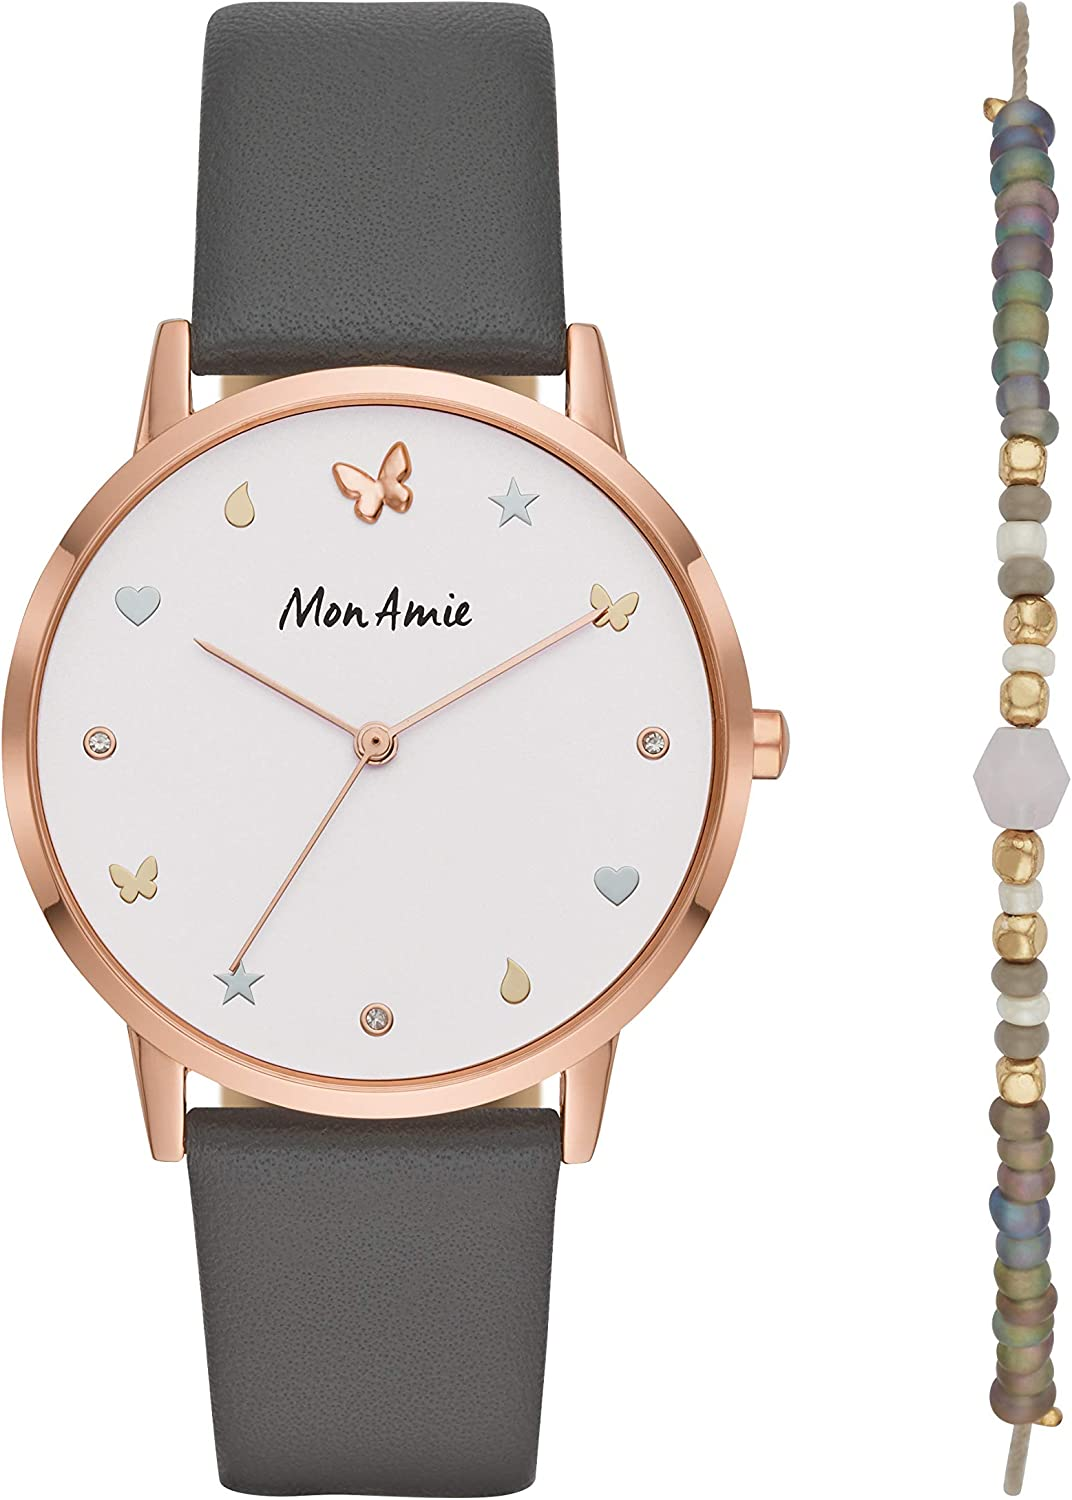 Mon Amie Women s Supports Opportunity Quartz Leather Strap, Grey, 18 Casual Watch Model CBMA2503